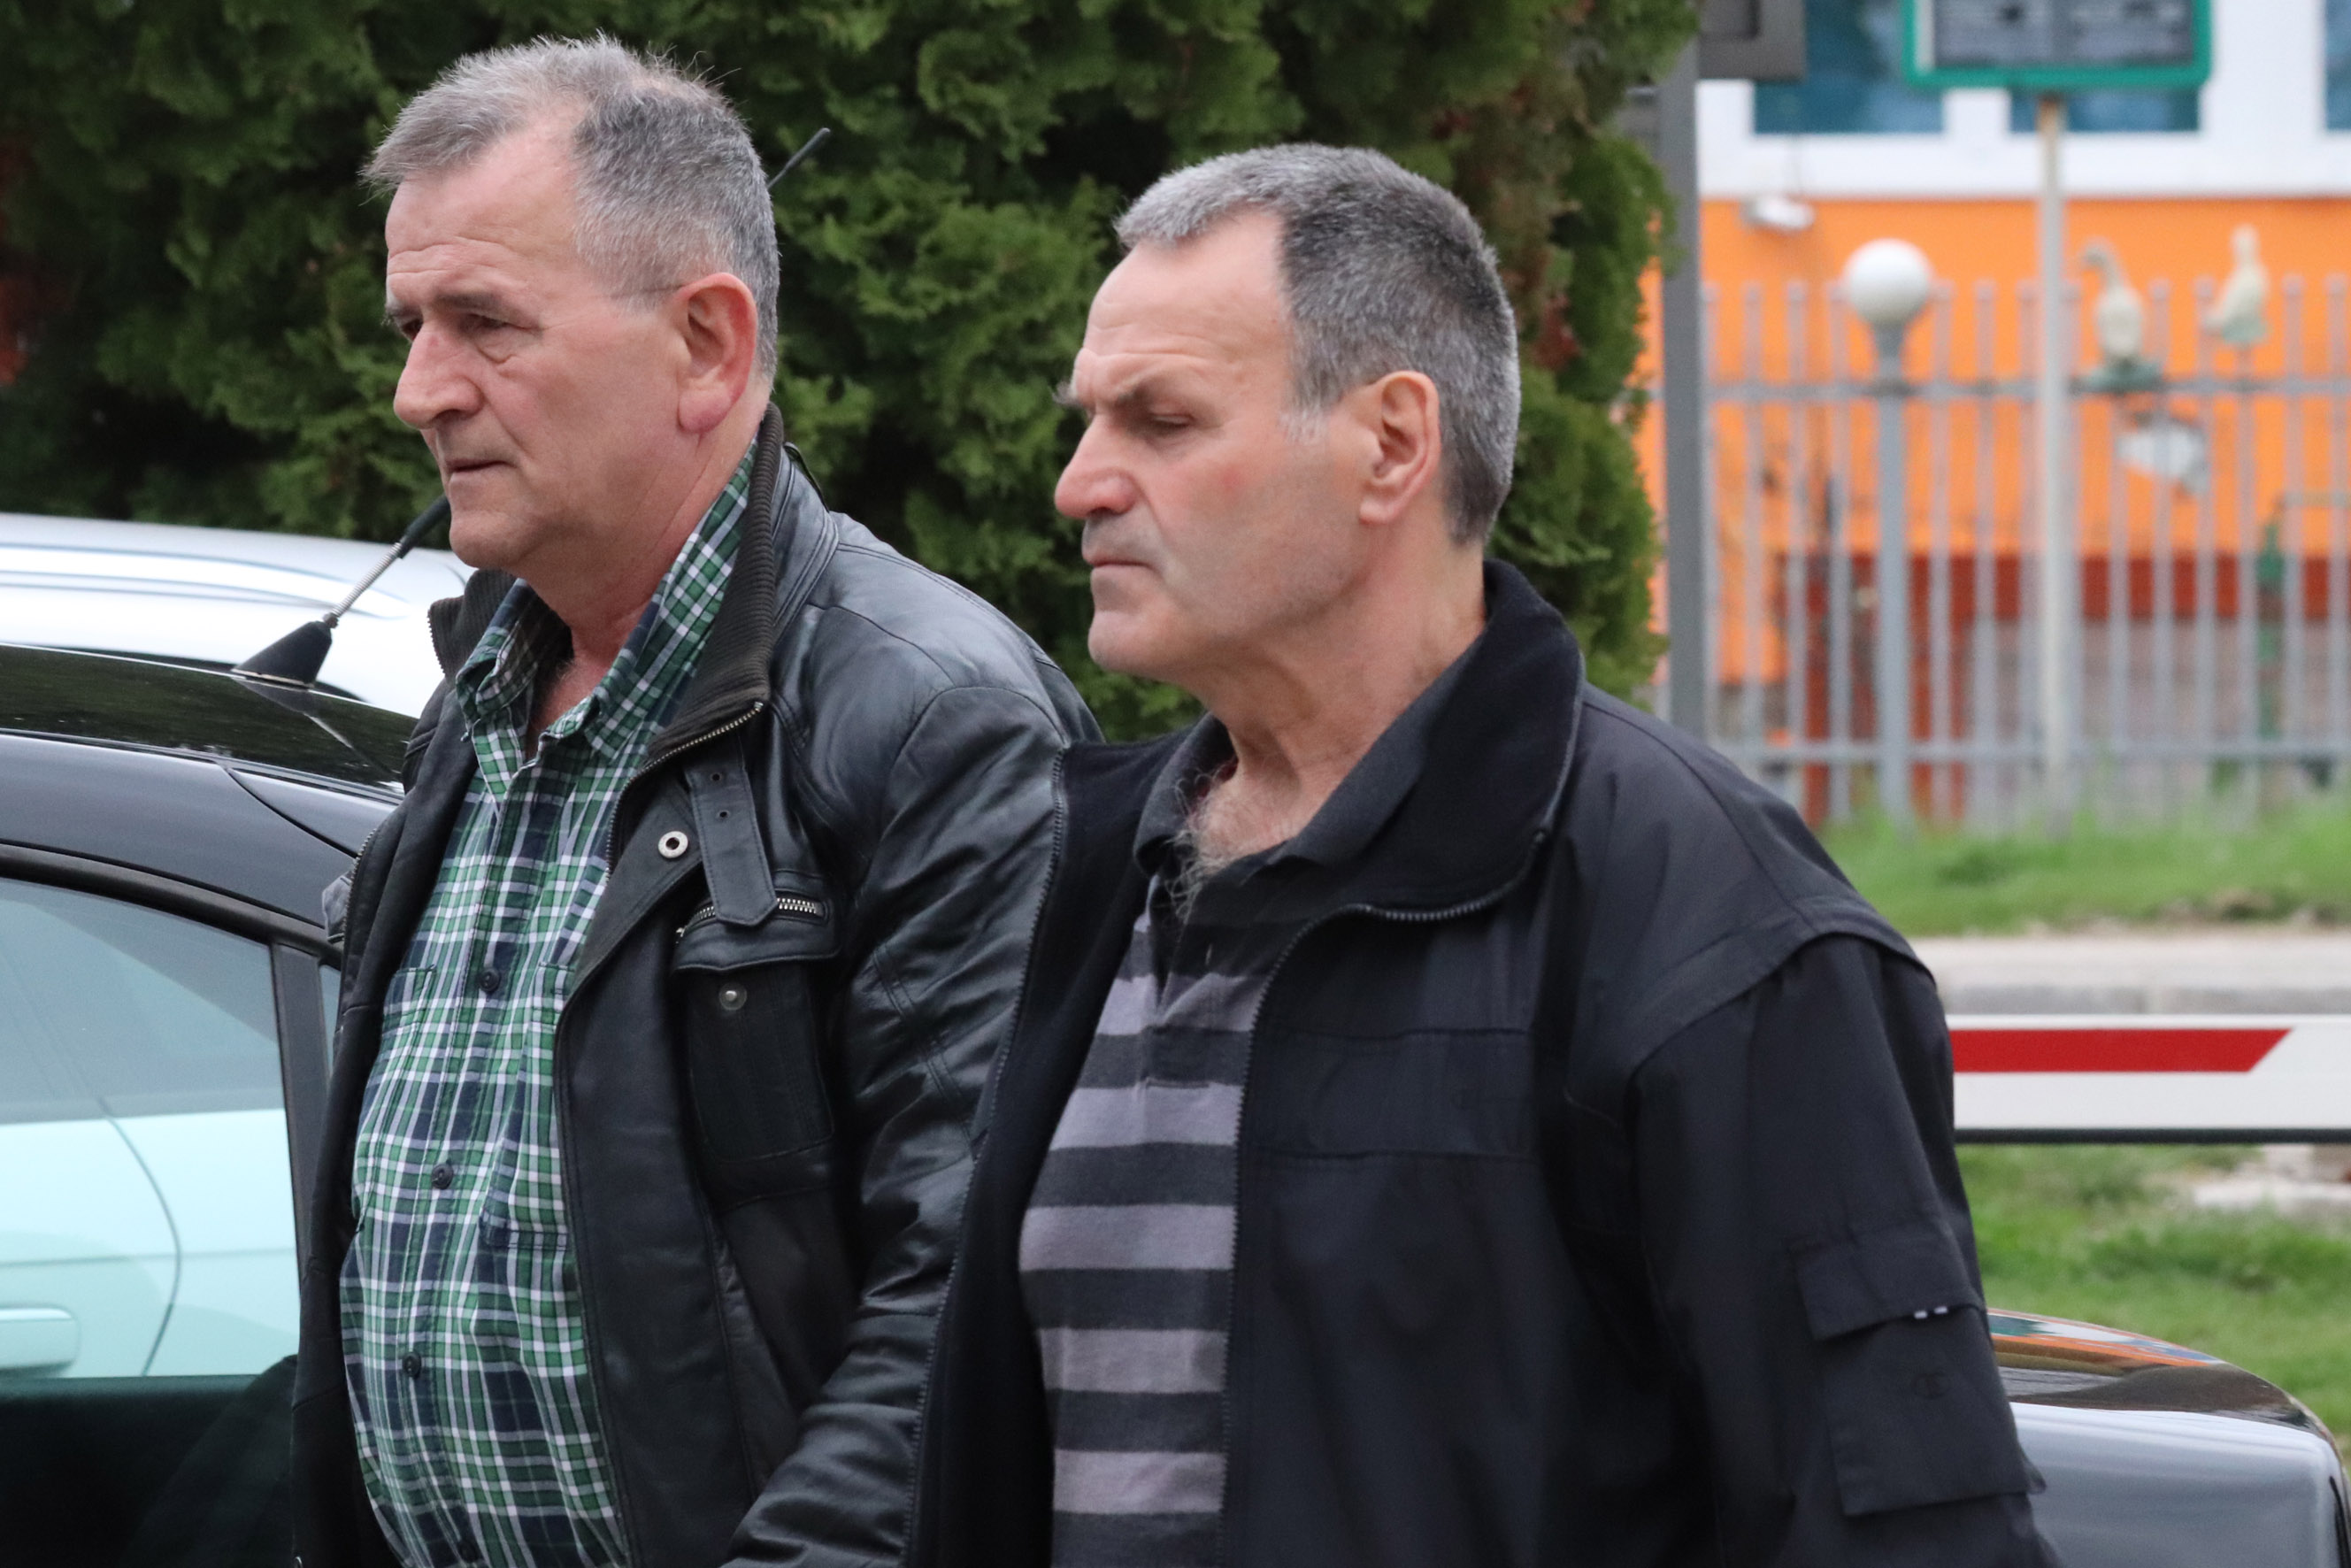 Bosnian Serb Policeman's Crimes Against Humanity Conviction Upheld